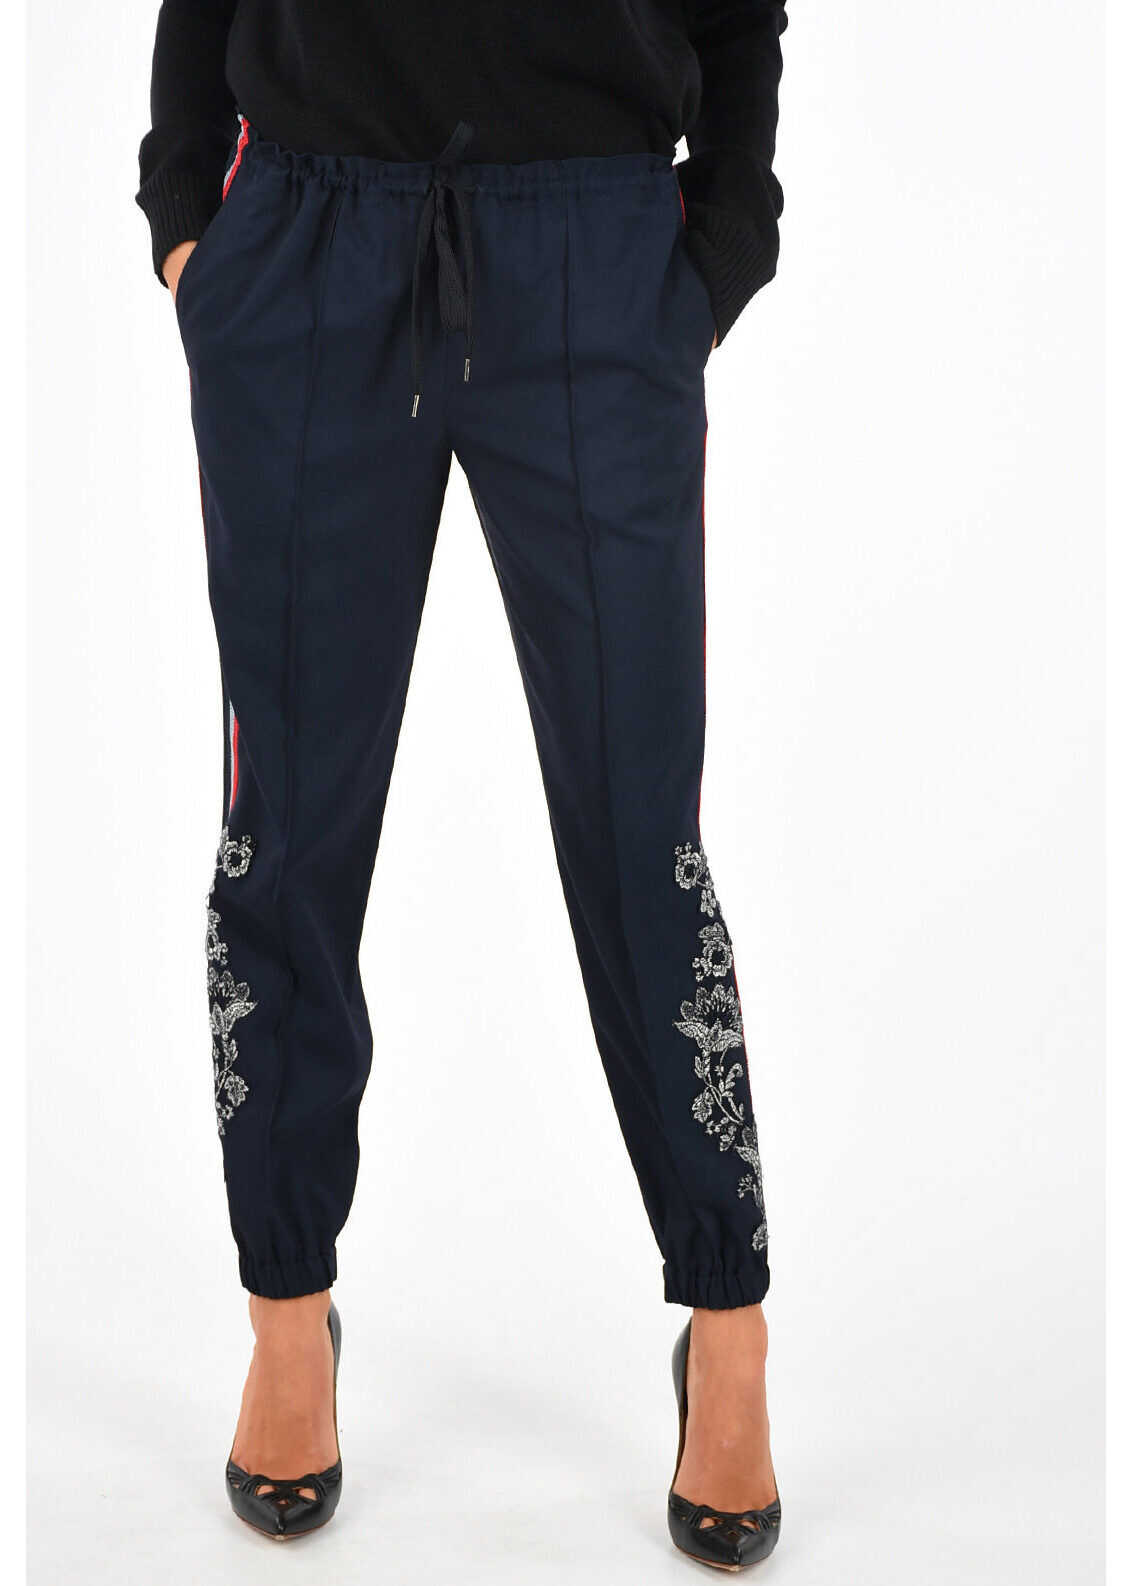 Ermanno Scervino Embroidered Pants MIDNIGHT BLUE